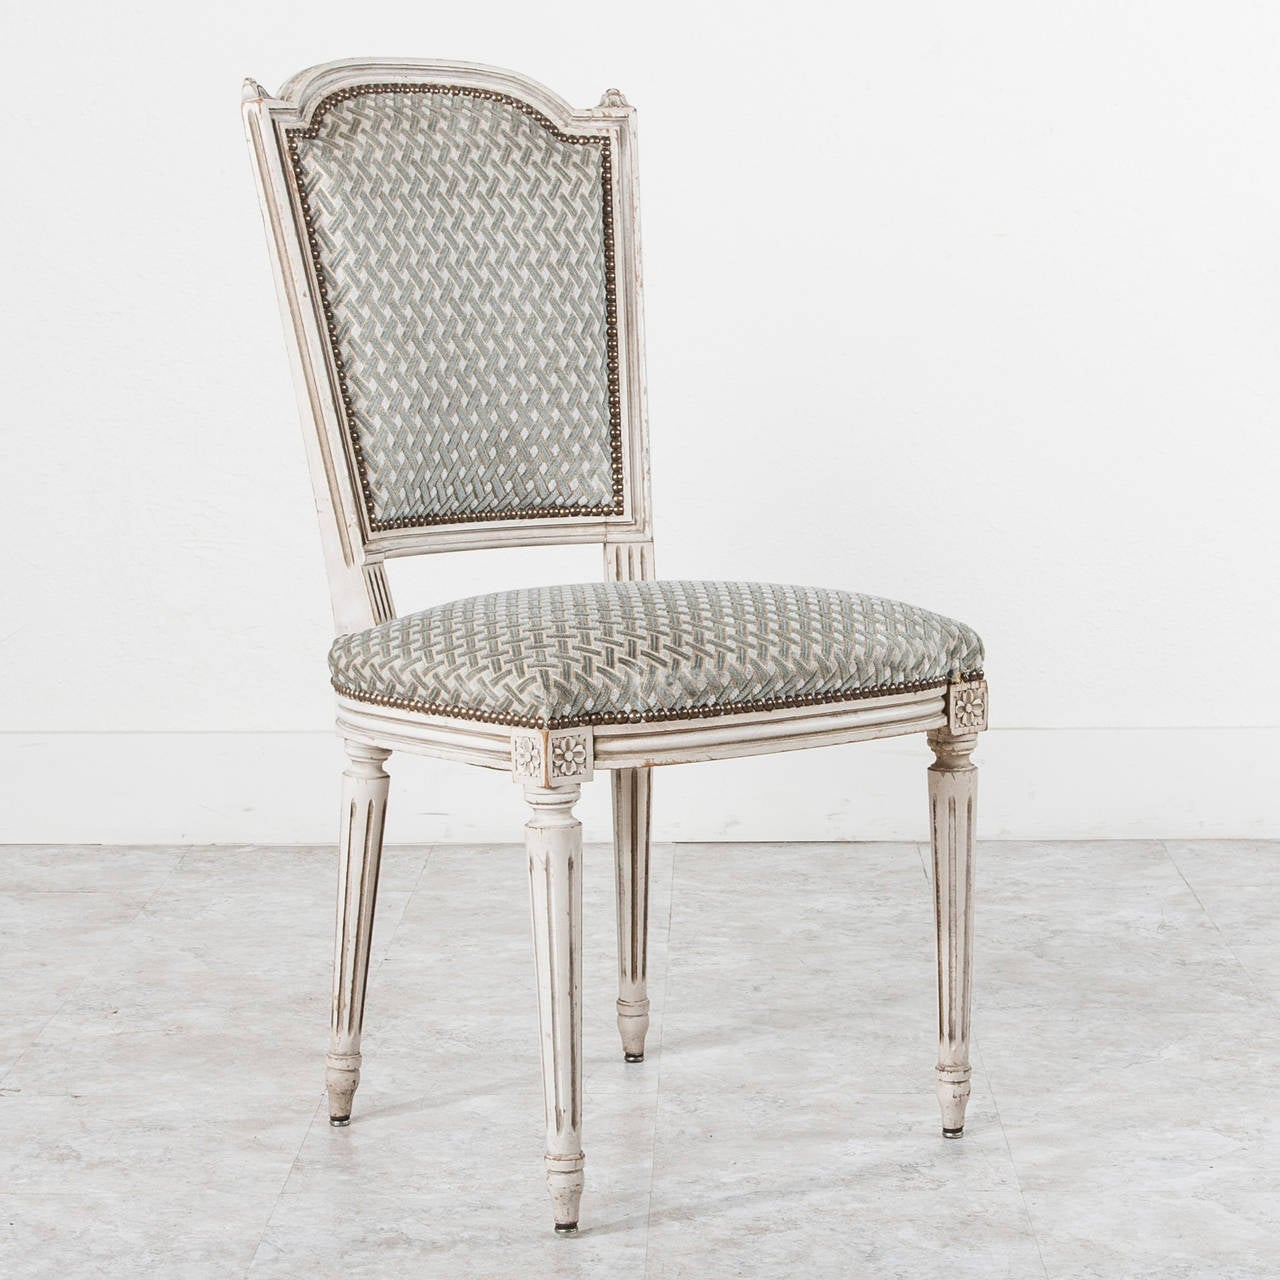 Set of Six Jansen Louis XVI Style Dining Chairs in White